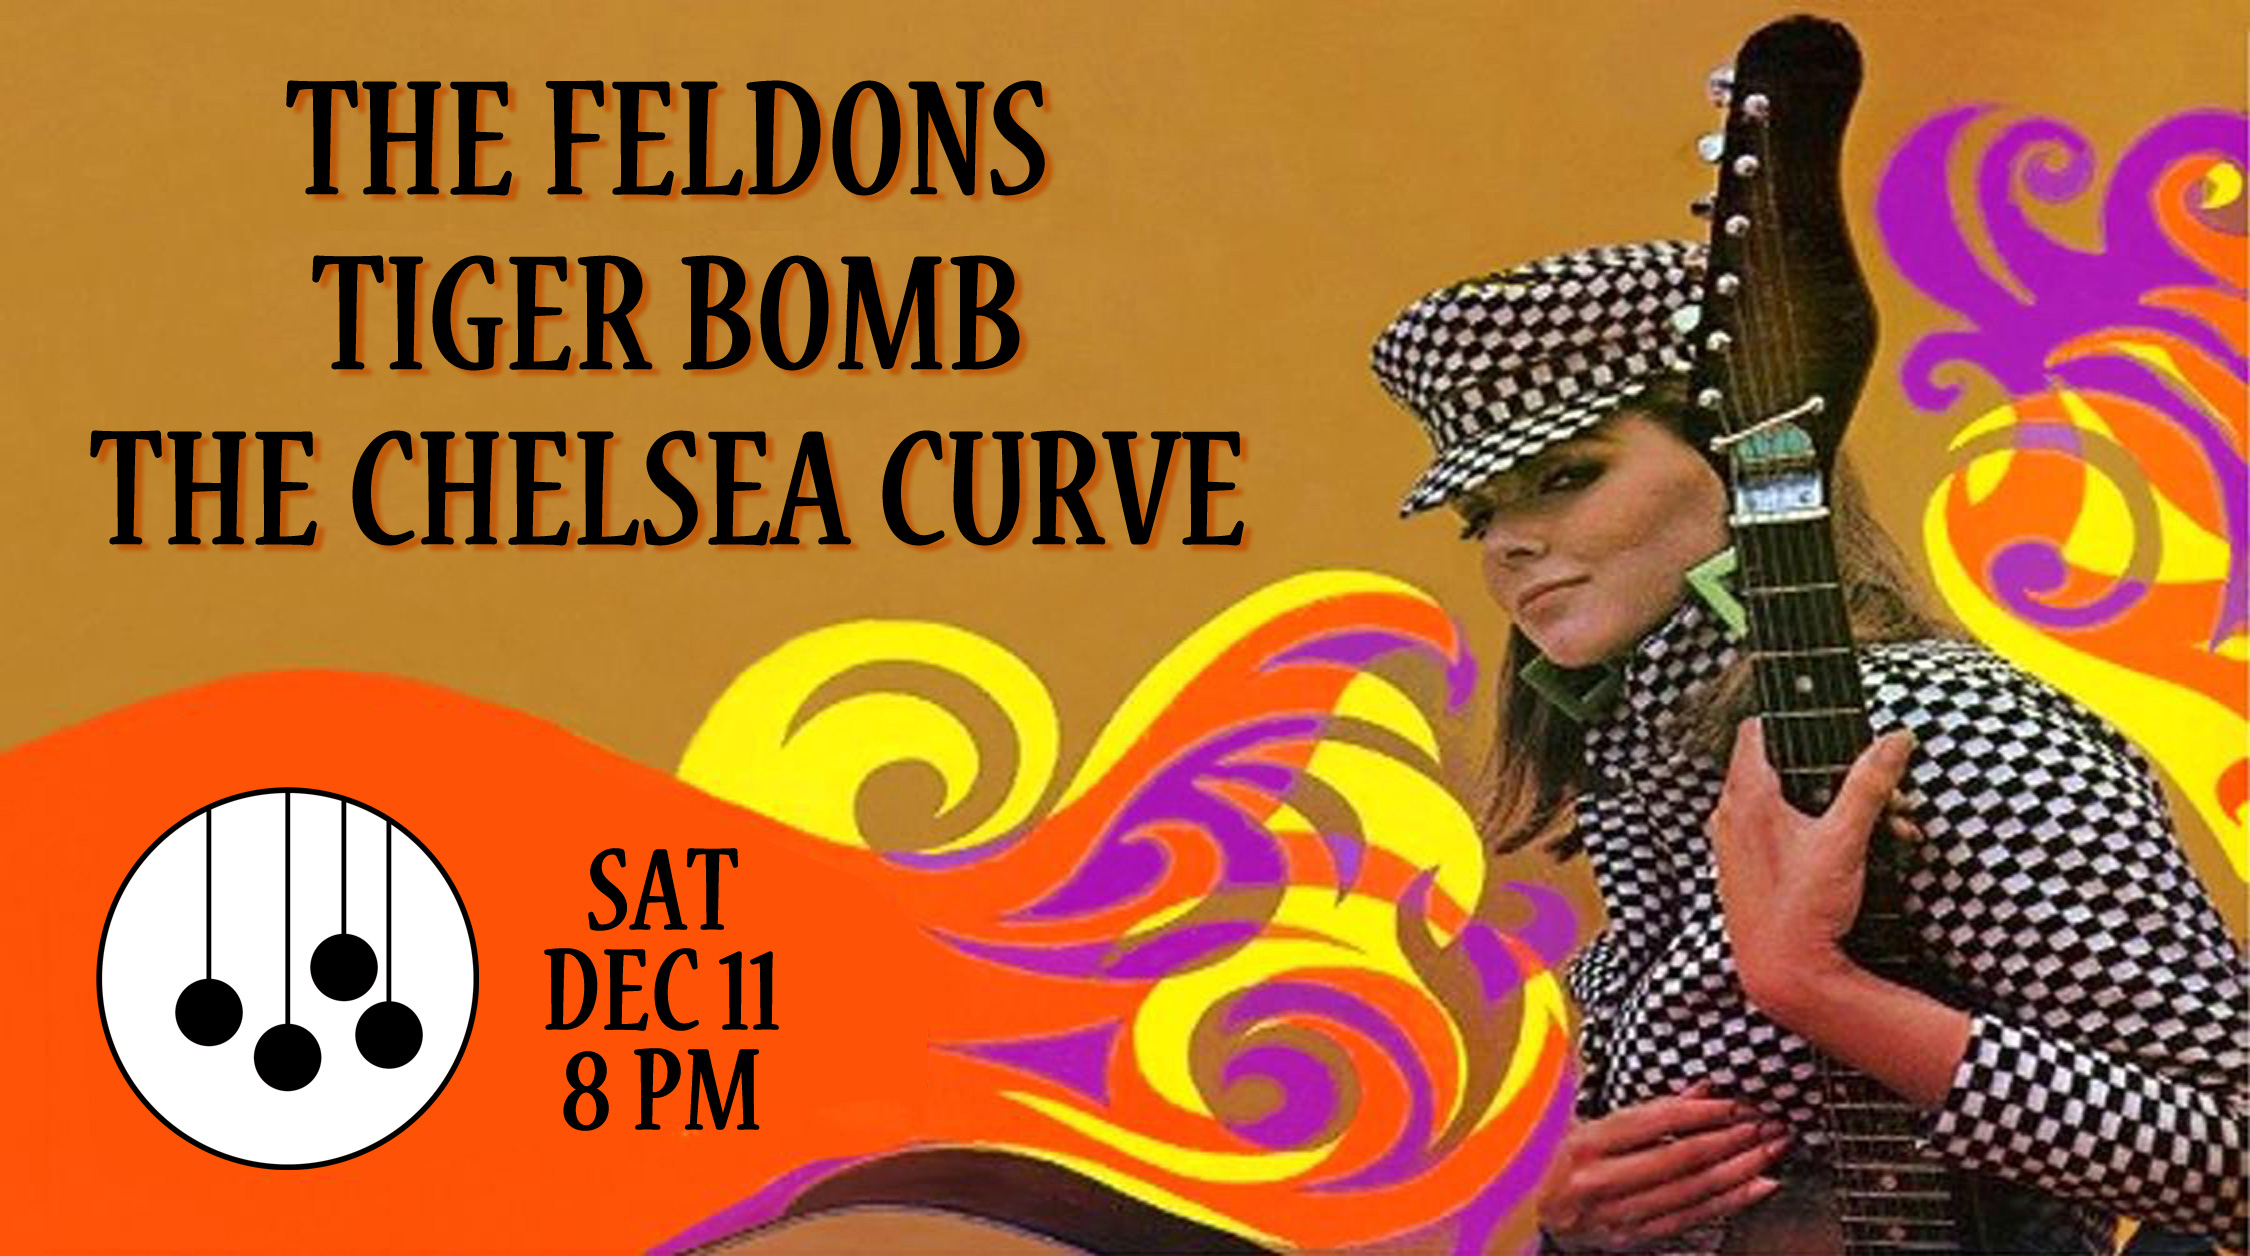 The Feldons with Tiger Bomb & The Chelsea Curve